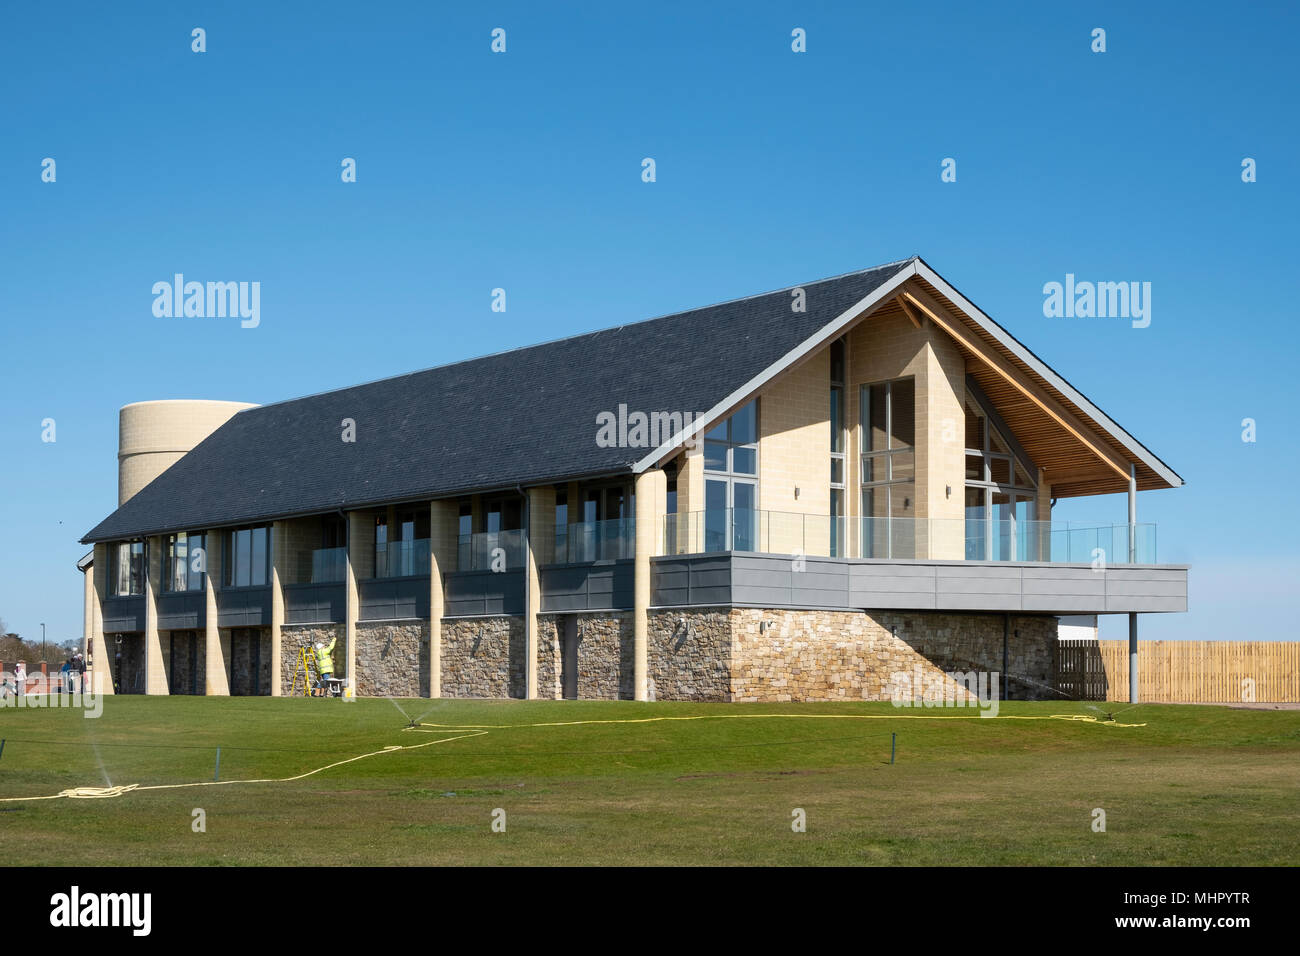 View of new clubhouse (opened April 2018) at Carnoustie Golf Links in Carnoustie, Angus, Scotland, UK. Carnoustie is venue for the 147th Open Champion - Stock Image